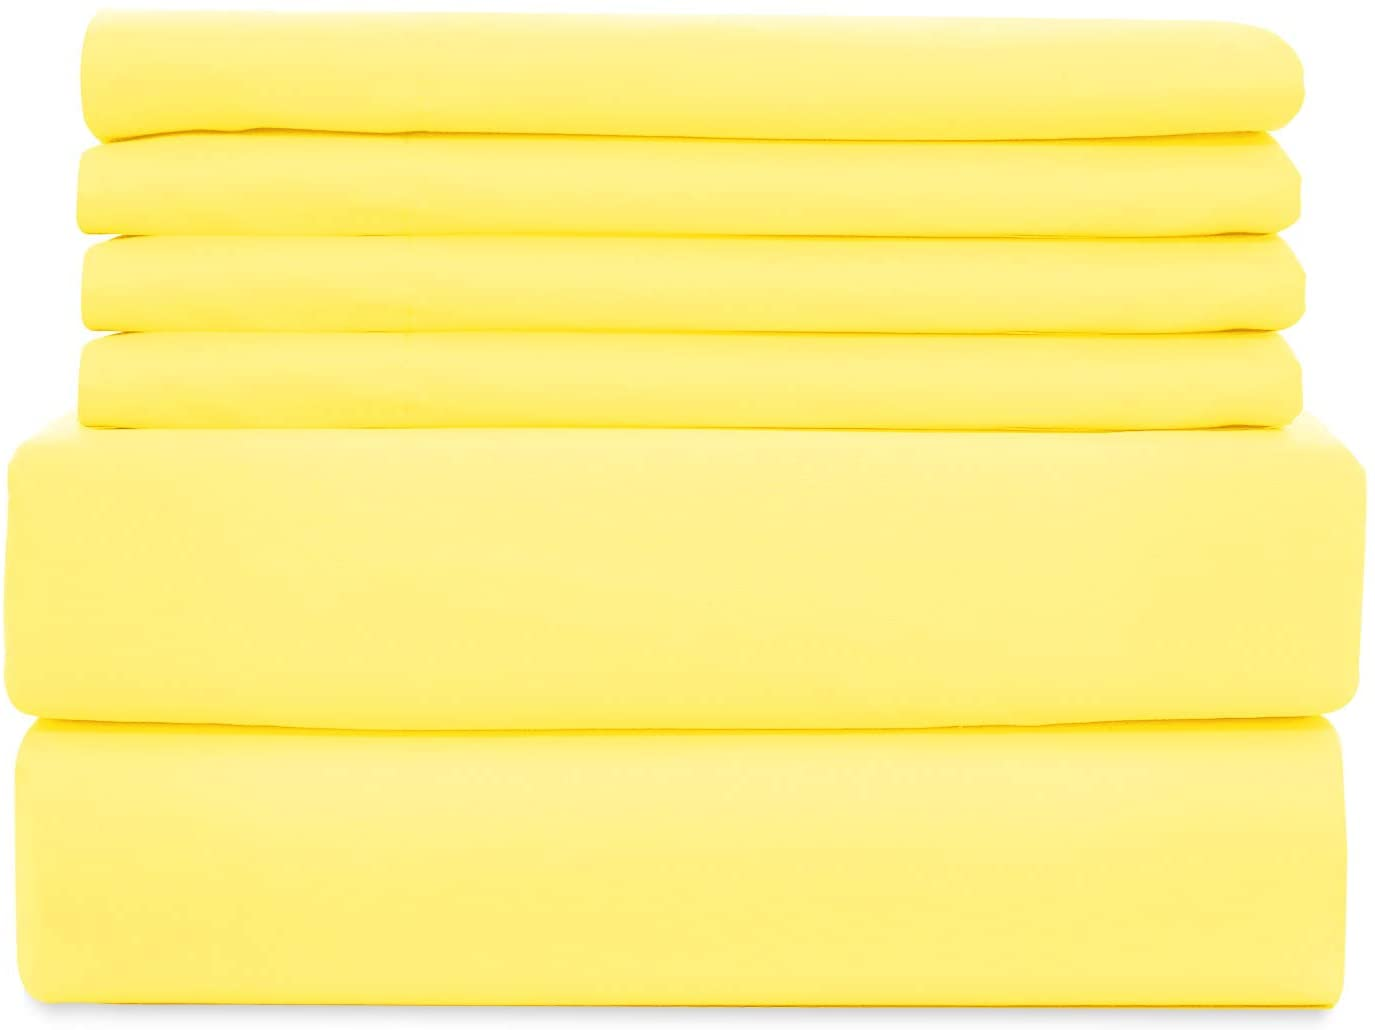 WAVVA Soft Bedding 6 Piece Bed Sheets Set - 1800 Premium Quality Deep Pocket, Wrinkle & Fade Resistant - Vibrant Yellow, California King